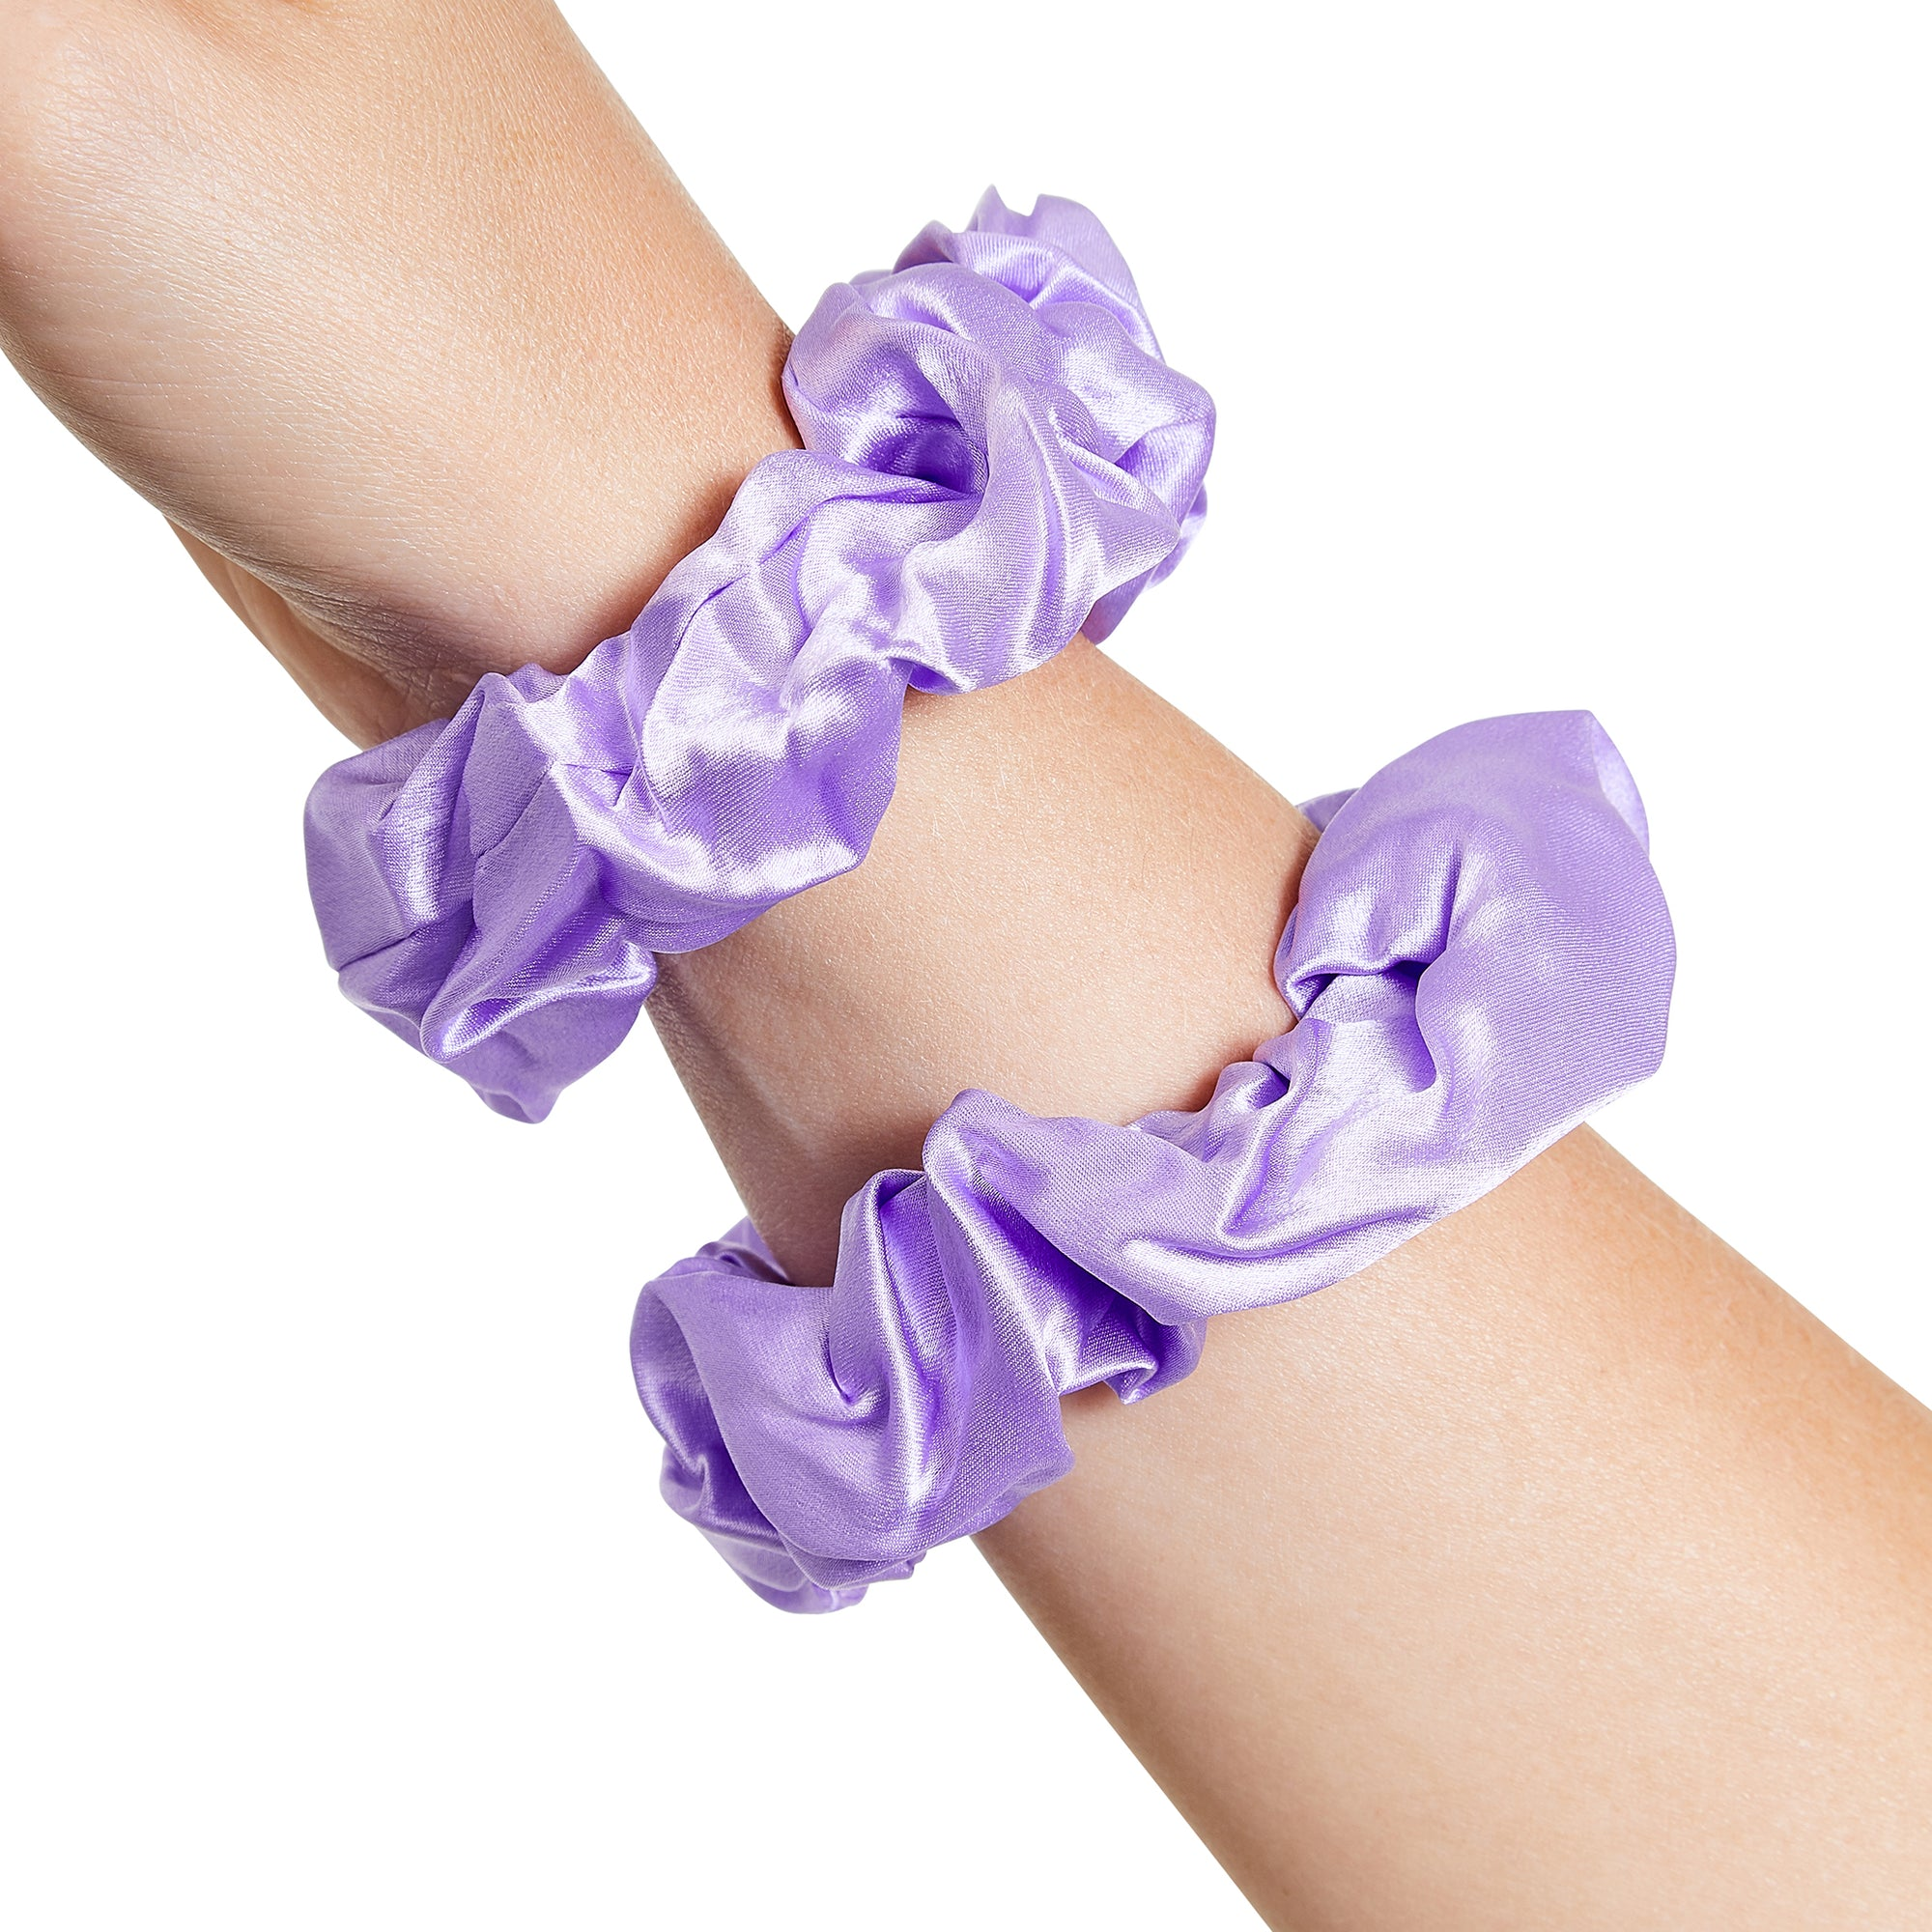 Only Curls Silk Scrunchies Lavender - Only Curls